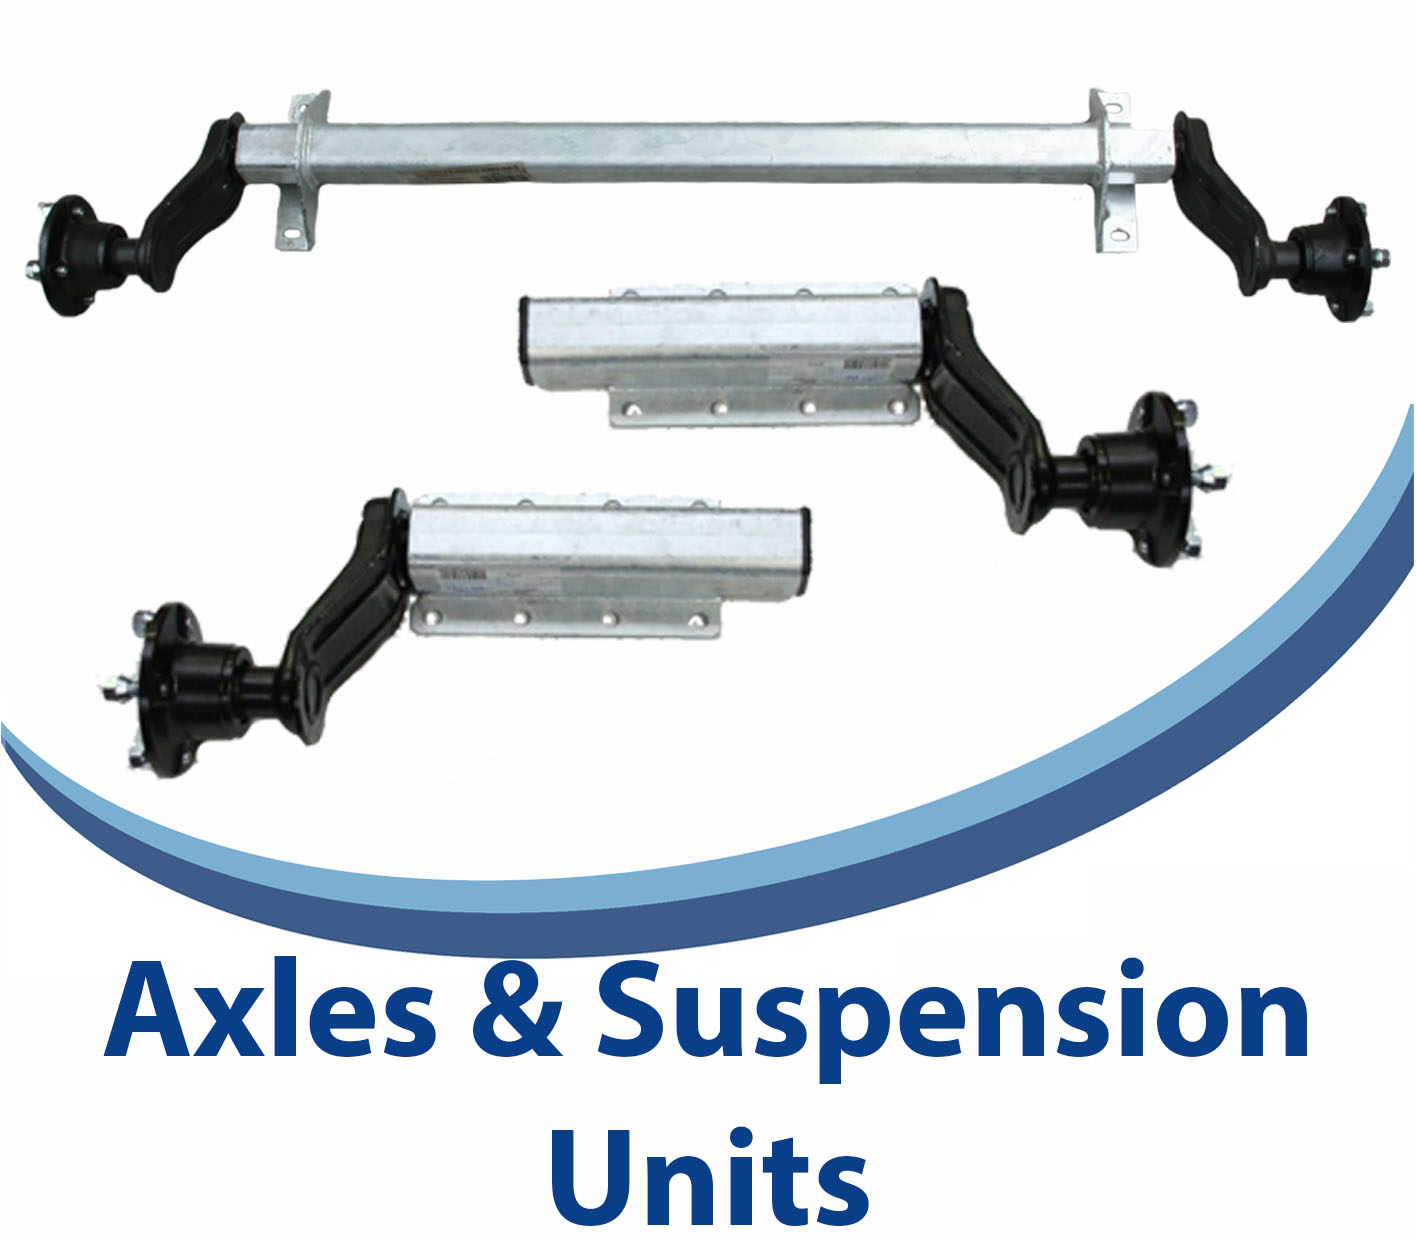 Parnells Stock A Huge Range Of Trailer Parts Such As Tyres Axles